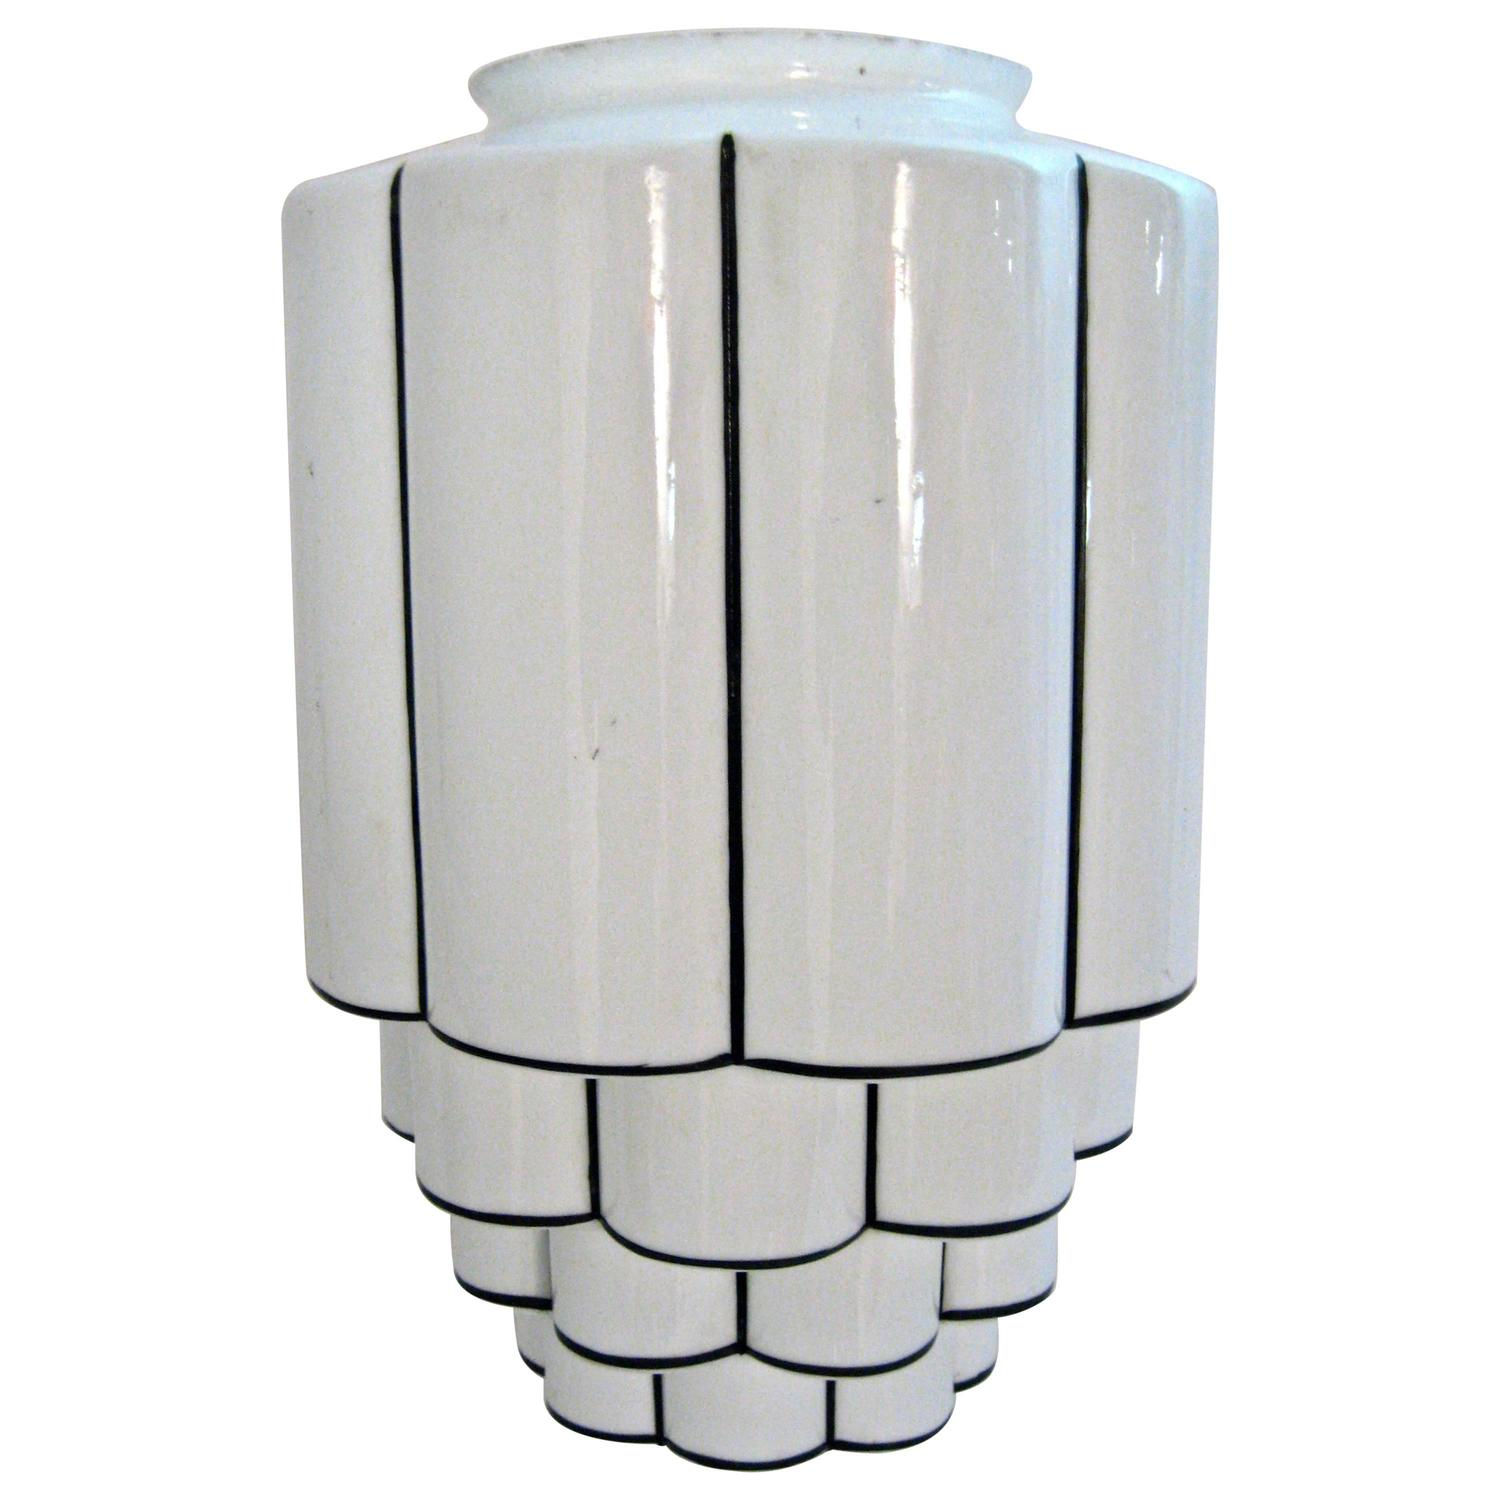 art deco skyscraper canopy lamp shade for sale at 1stdibs. Black Bedroom Furniture Sets. Home Design Ideas